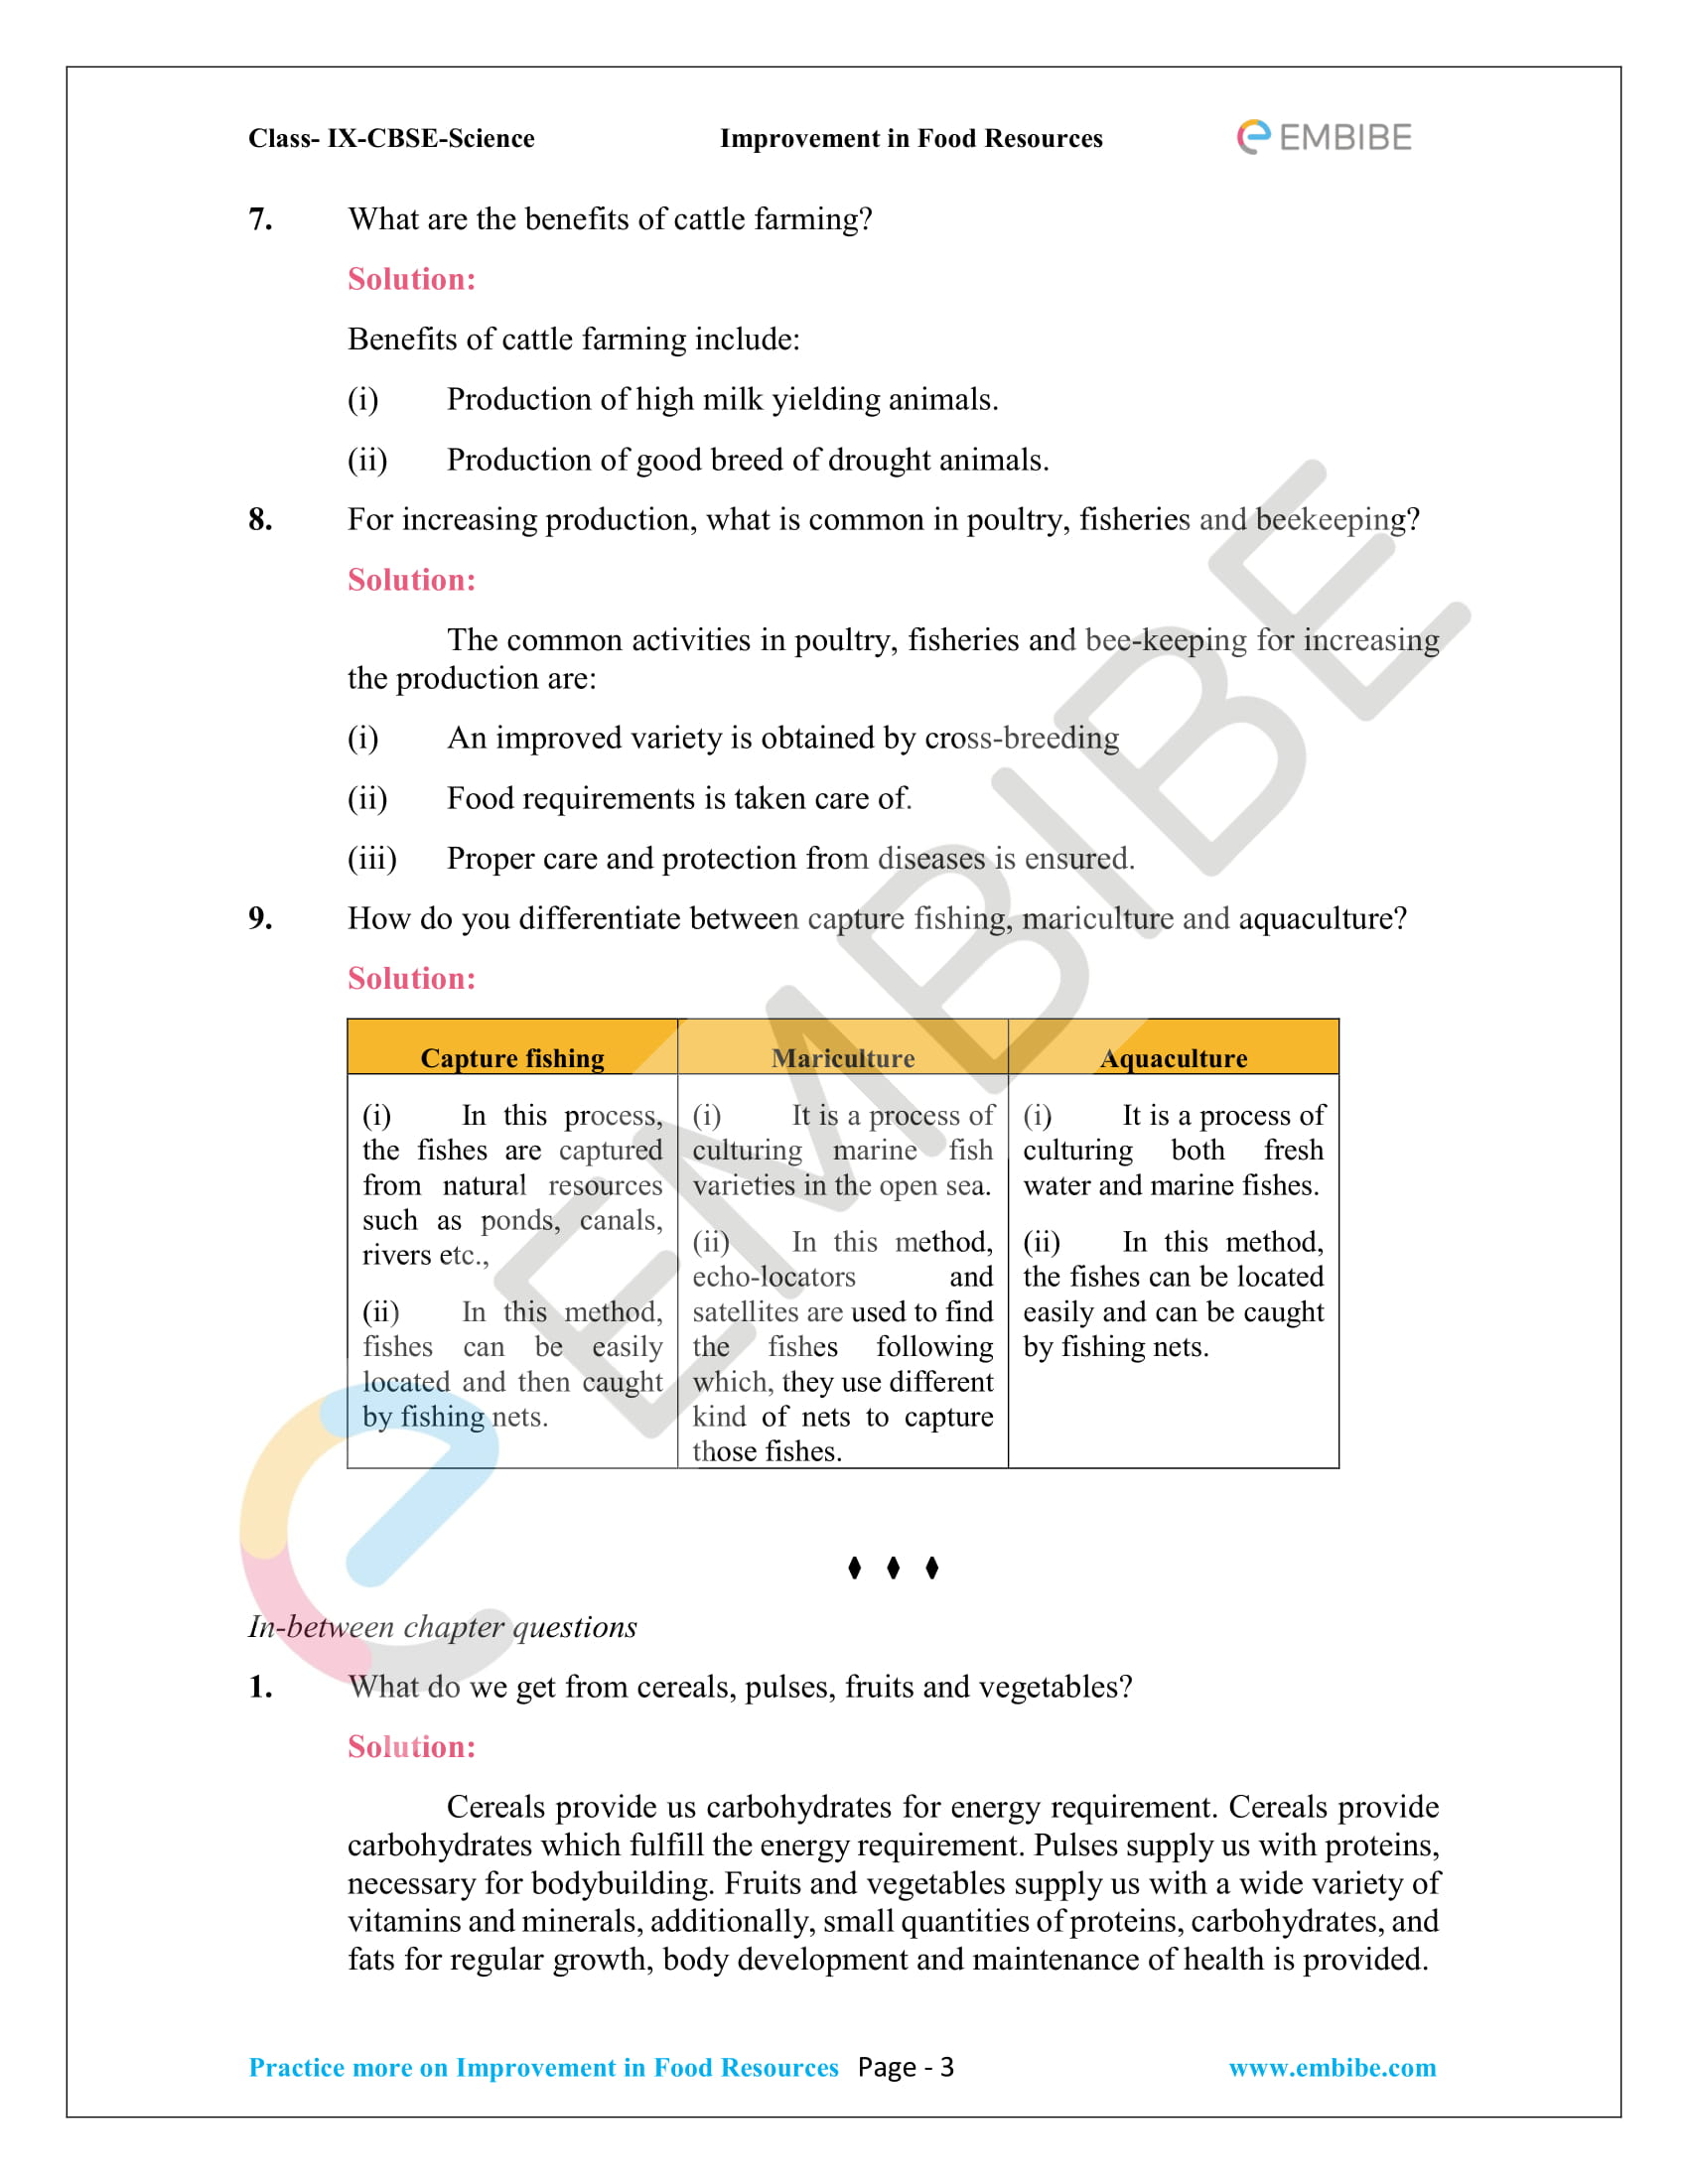 CBSE NCERT Solutions for Class 9 Science Chapter 15-3